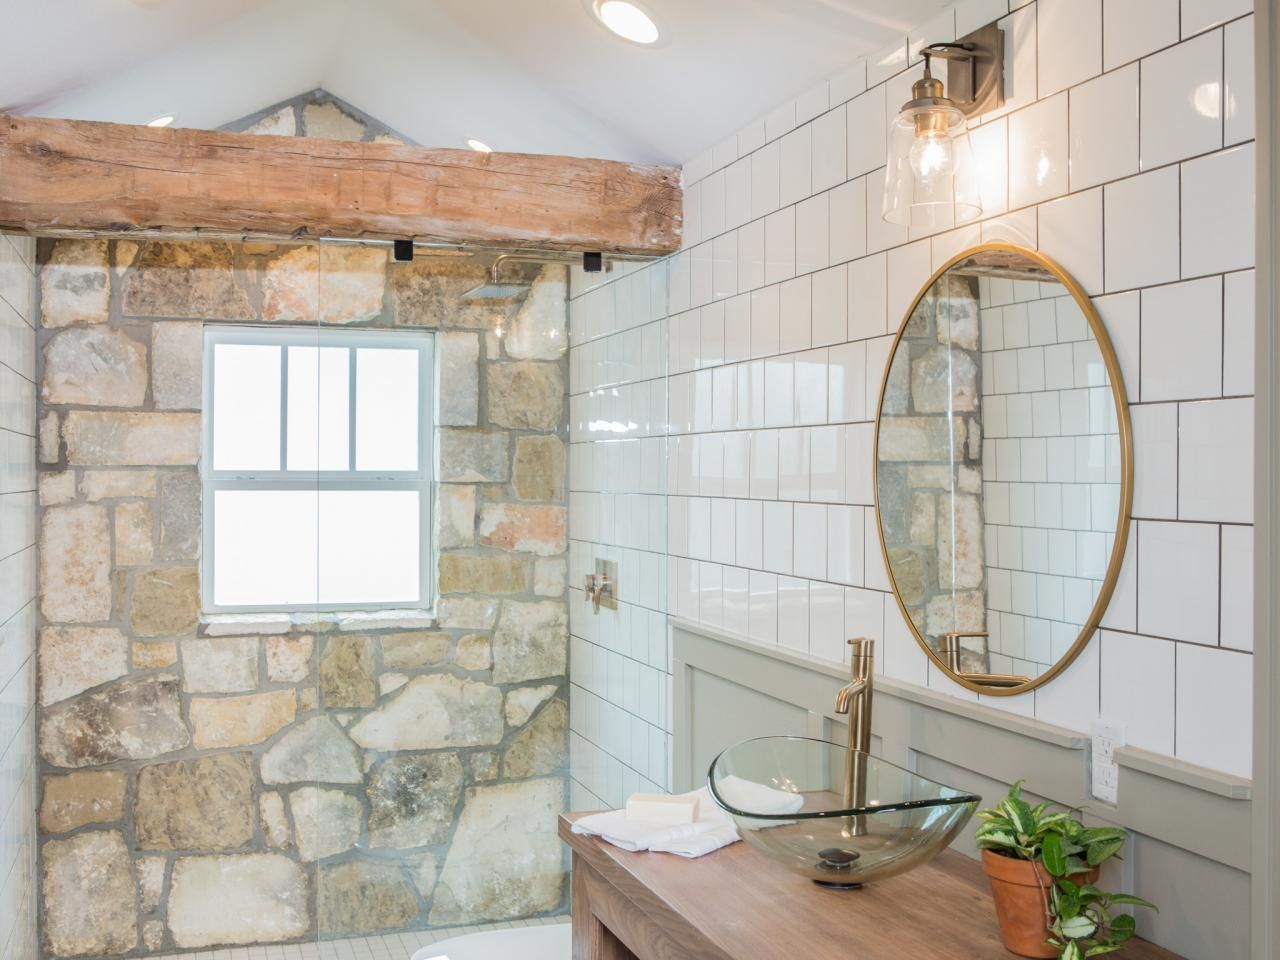 Photos | HGTV\'s Fixer Upper With Chip and Joanna Gaines | HGTV | New ...